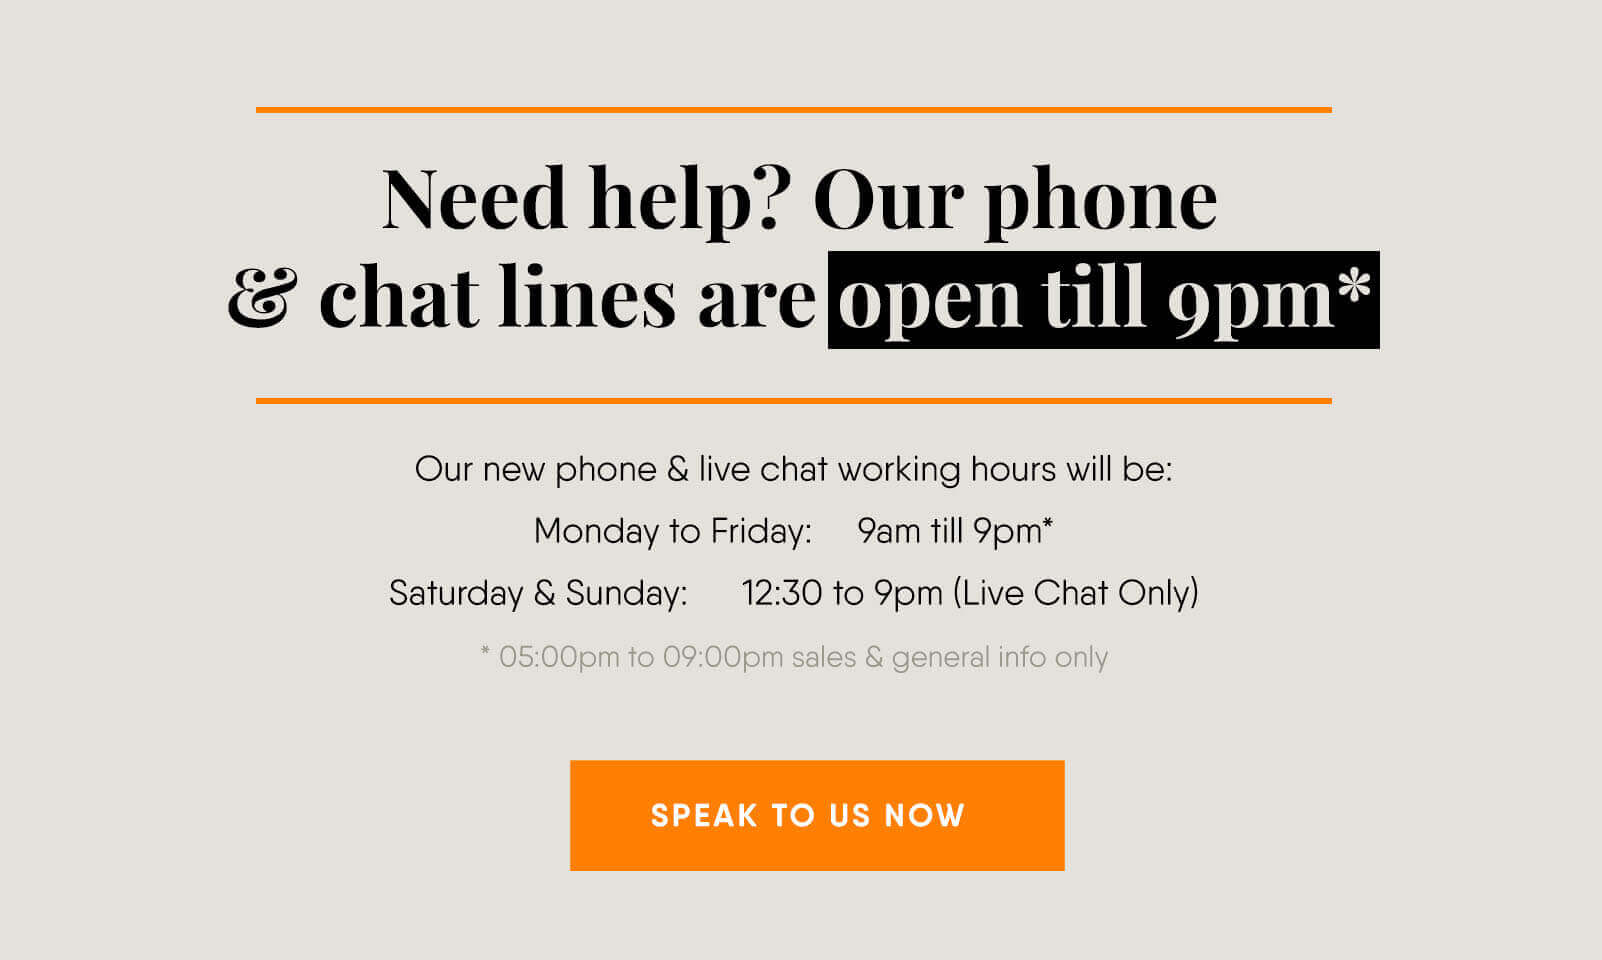 Opening new hours - chat & call 9pm